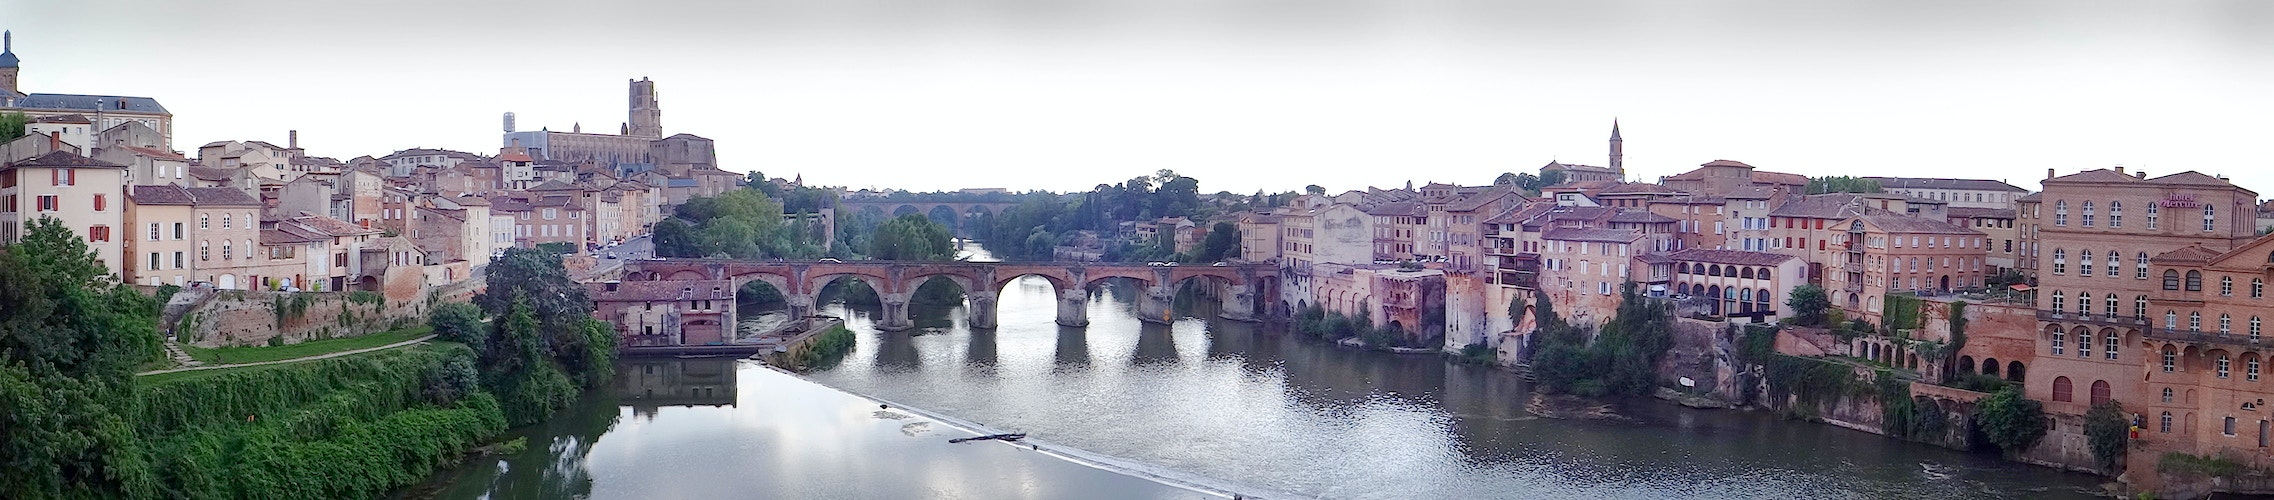 Albi Afternoon on the Tarn - Alexis Dillon | PHOTOGRAPHER